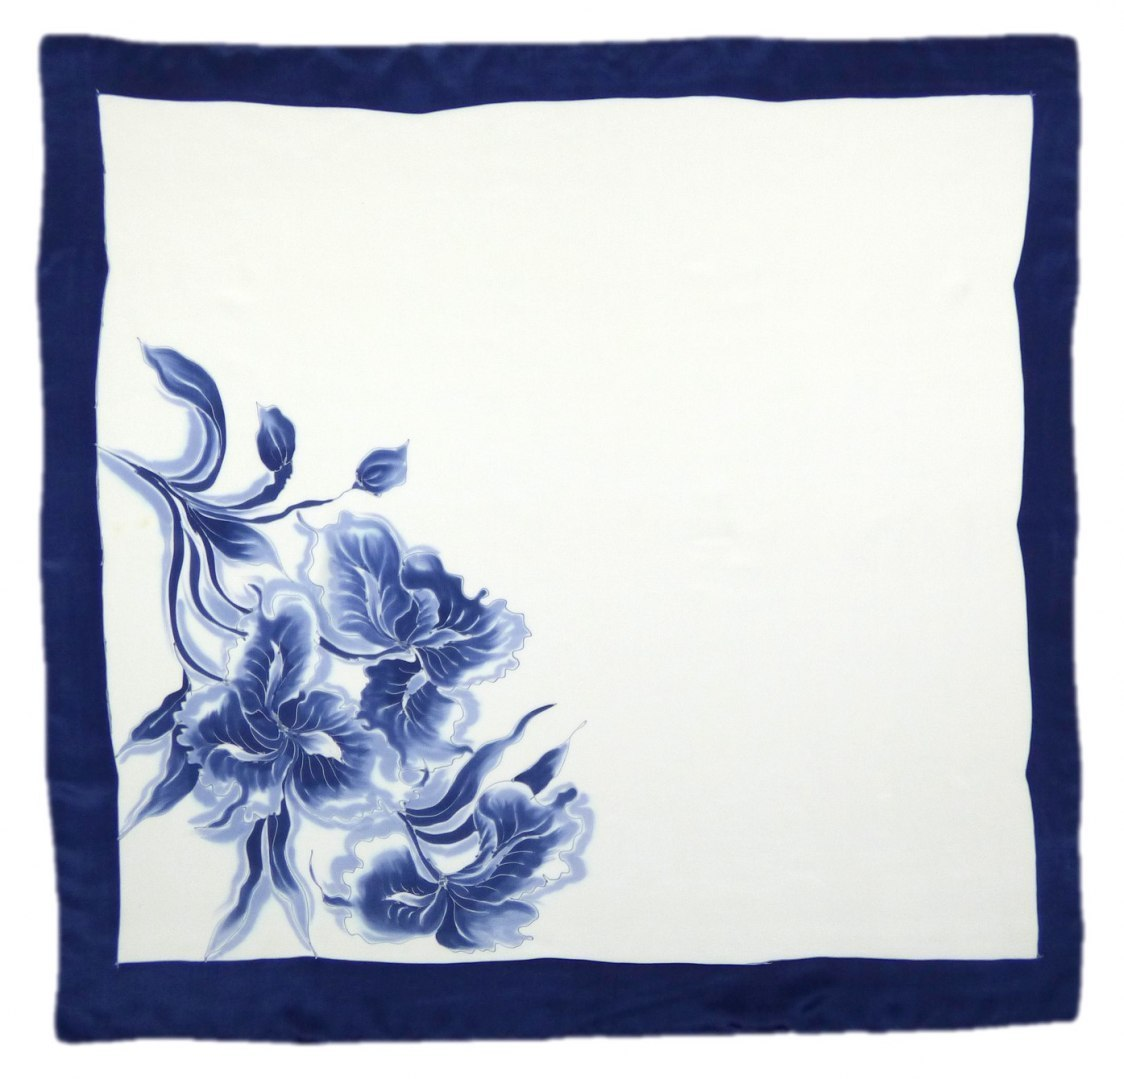 AM-294 Hand-painted silk scarf, 90x90cm